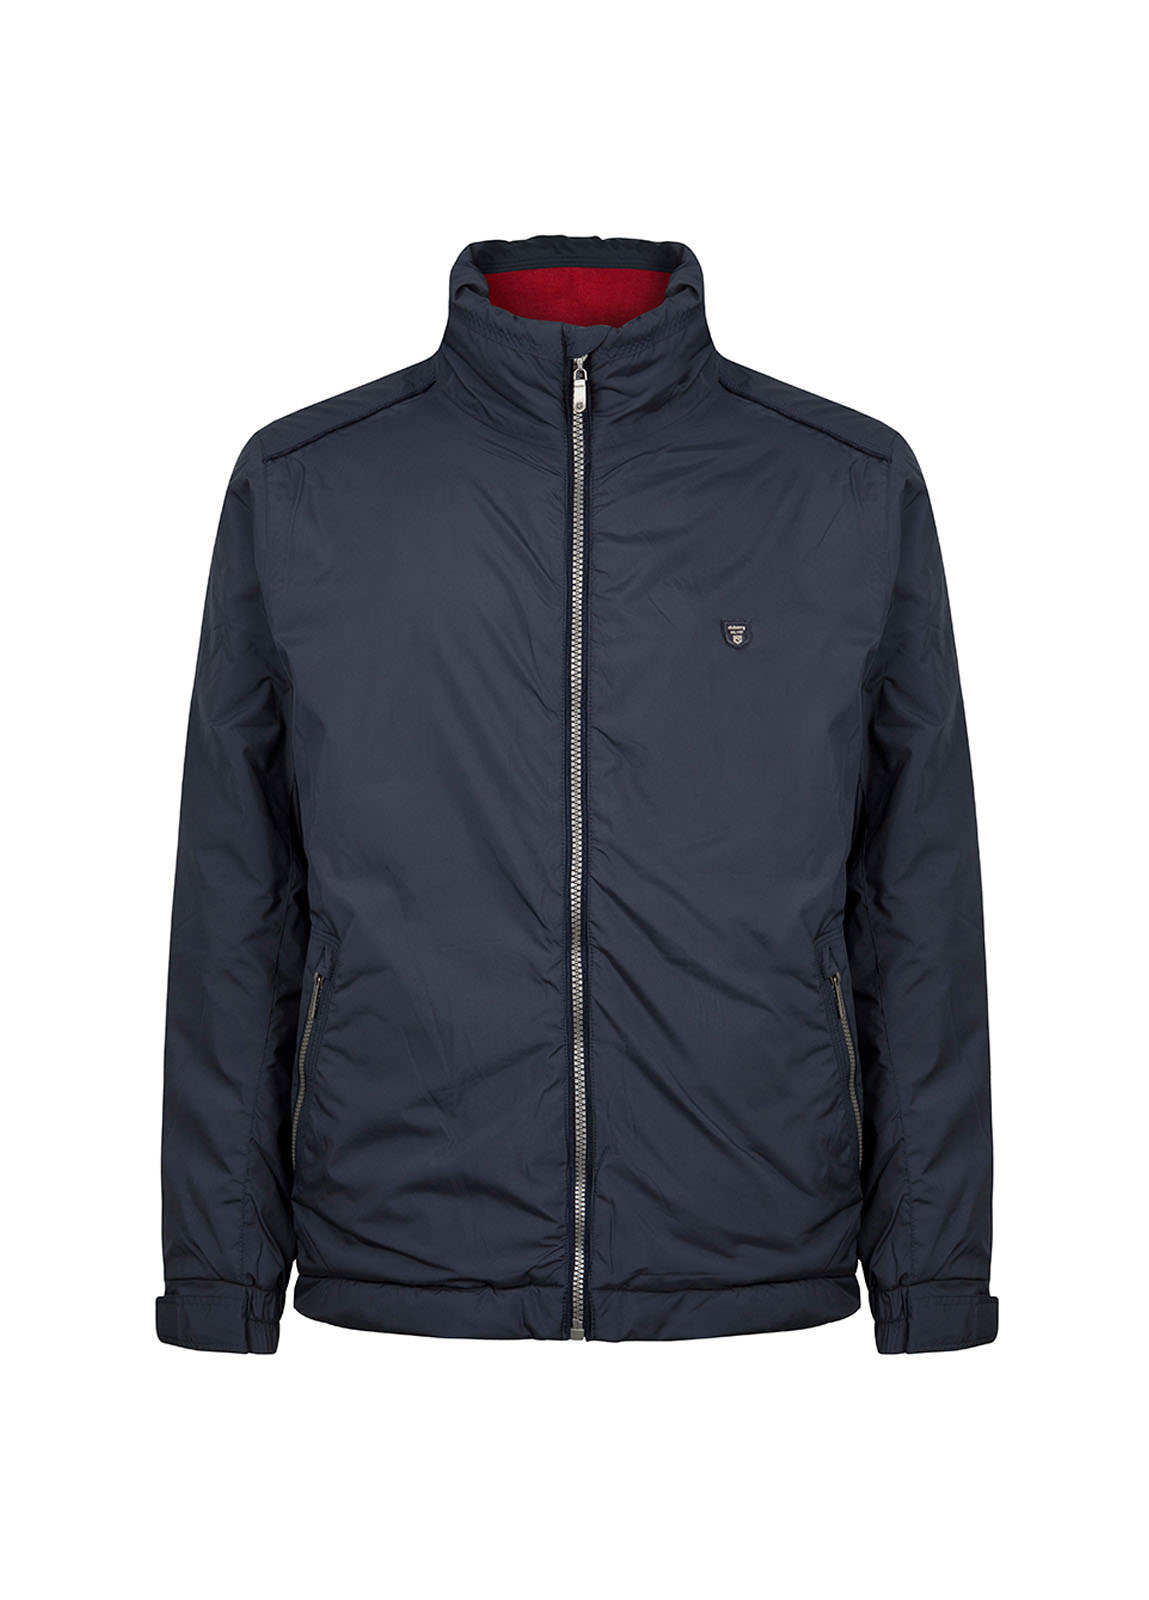 Starboard lightweight jacket - Navy